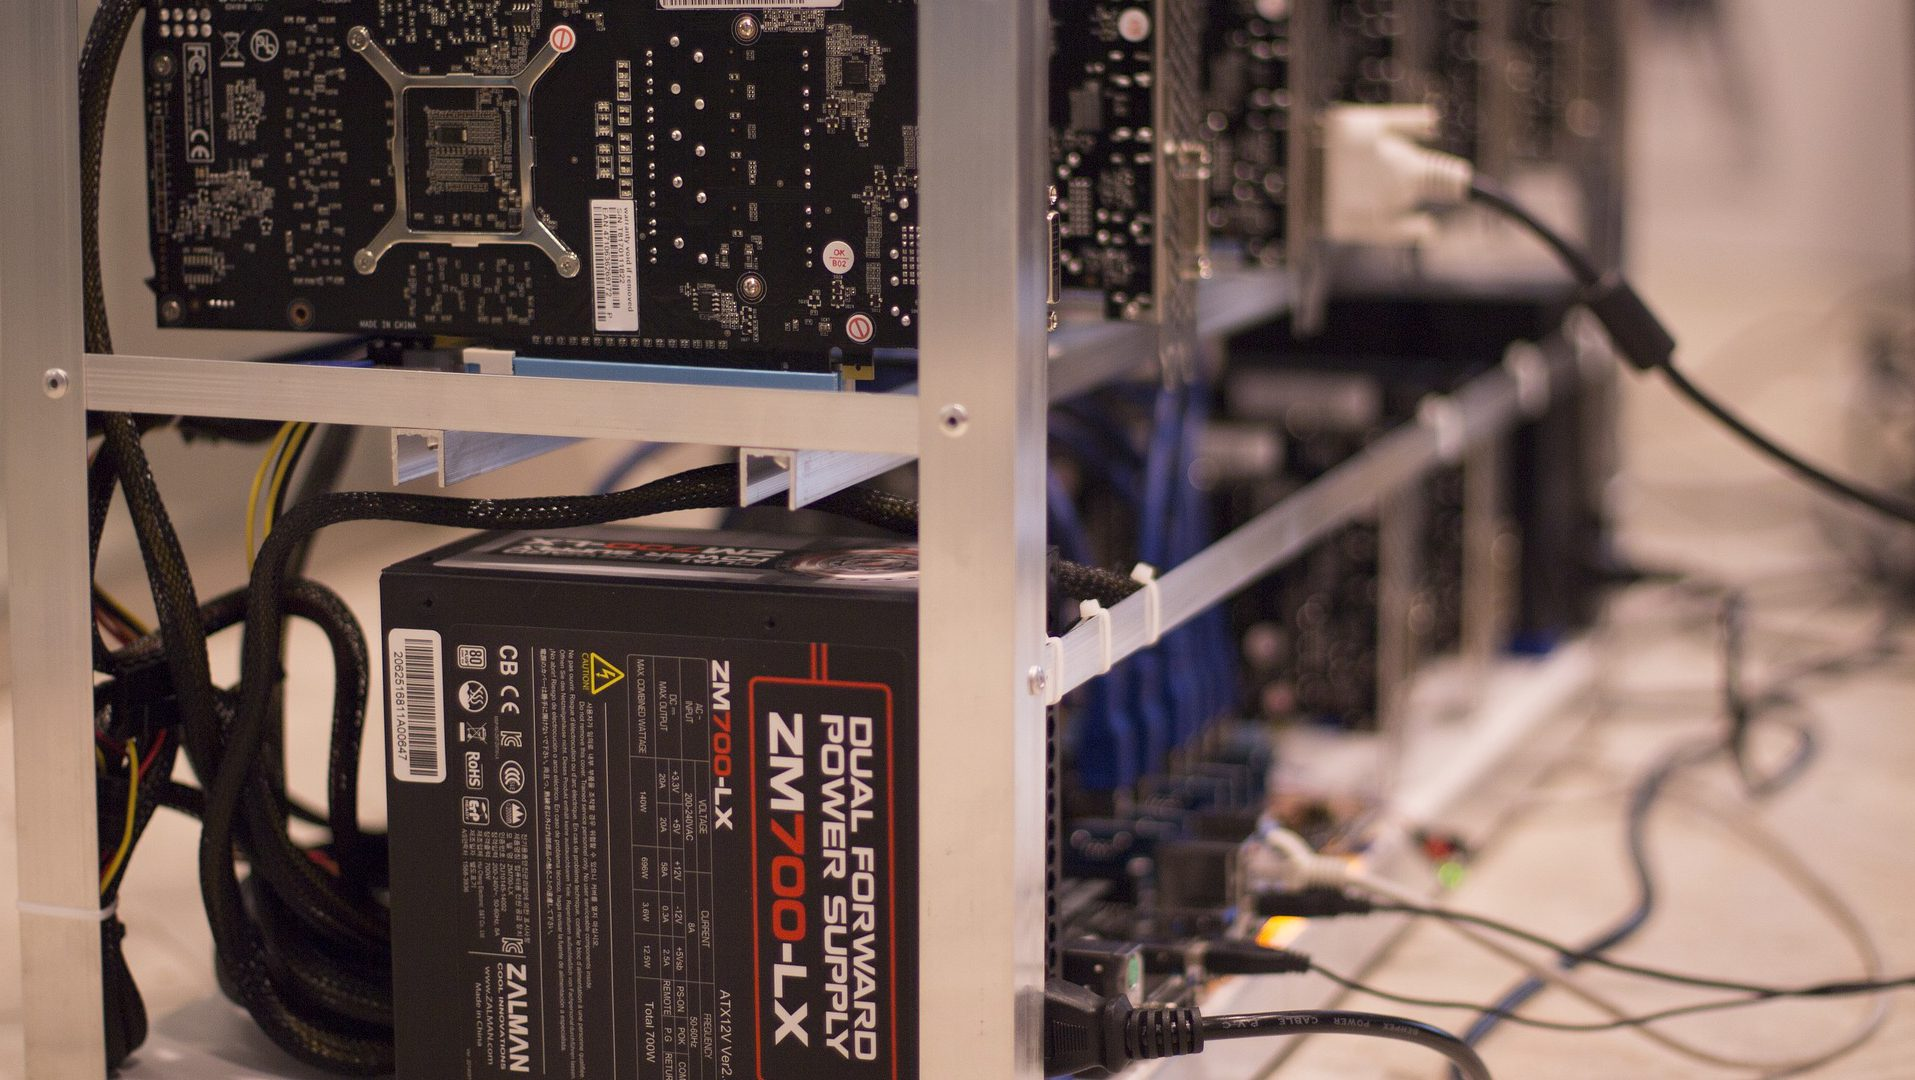 The secret lives of students who mine cryptocurrency in their dorm rooms